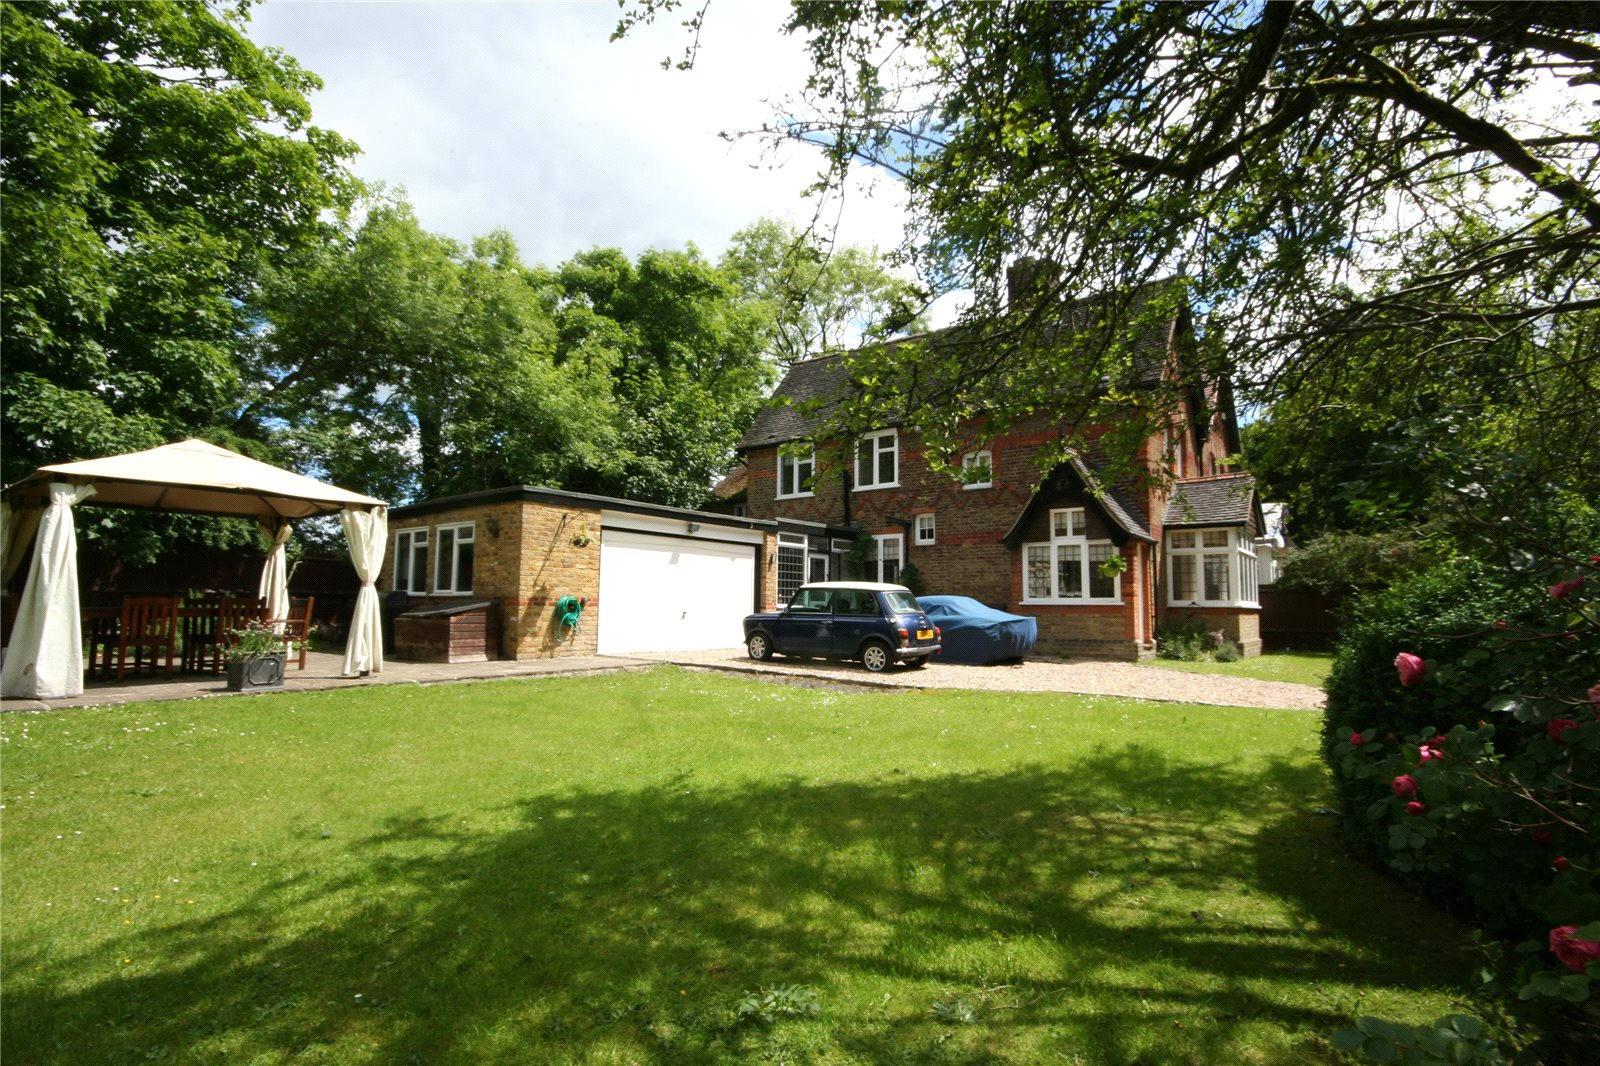 Частный дом для того Продажа на Heusden Way, Gerrards Cross, Buckinghamshire, SL9 Gerrards Cross, Англия